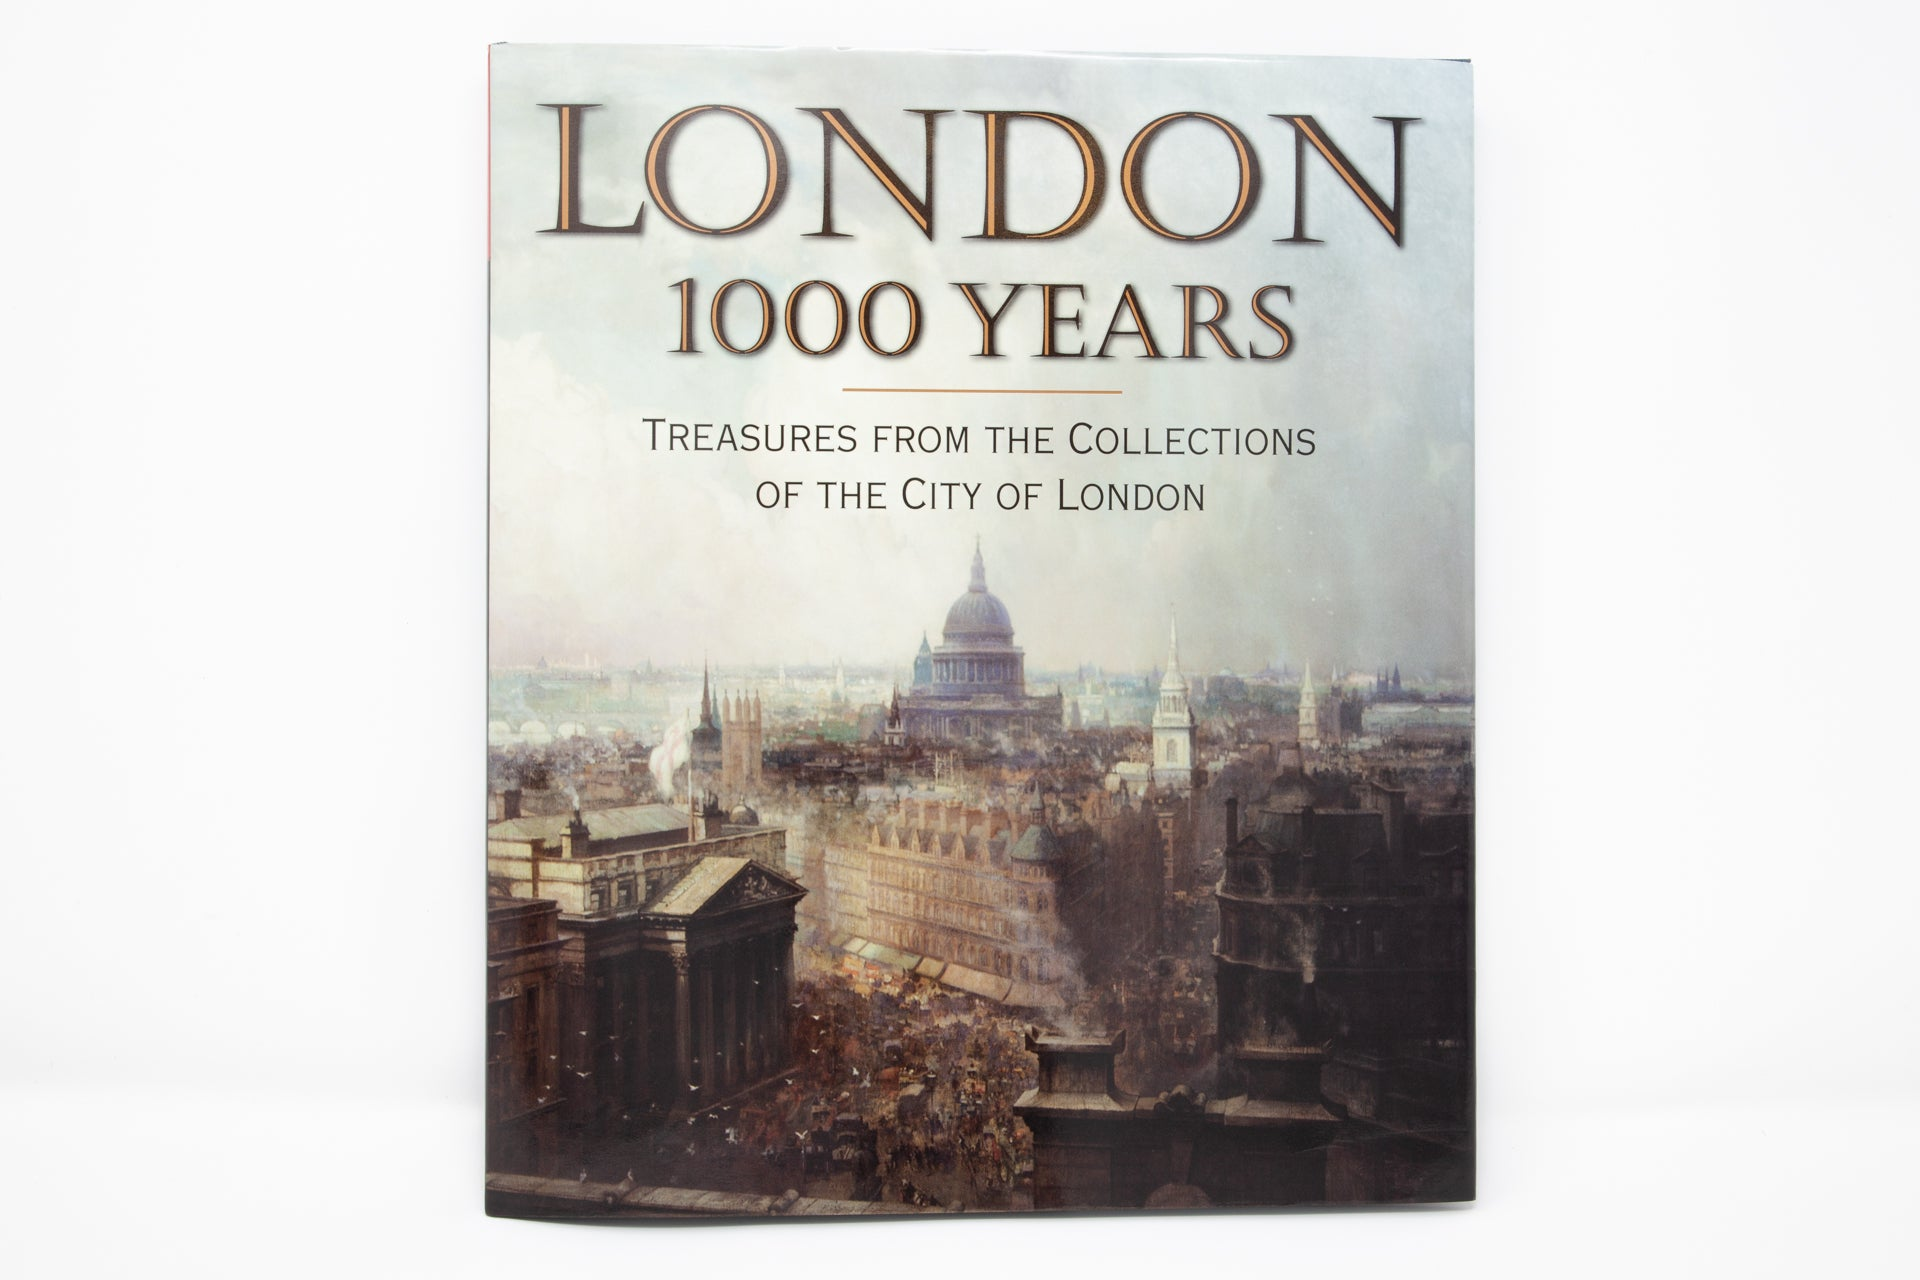 London 1000 Years - Treasures from the Collections of the City of London